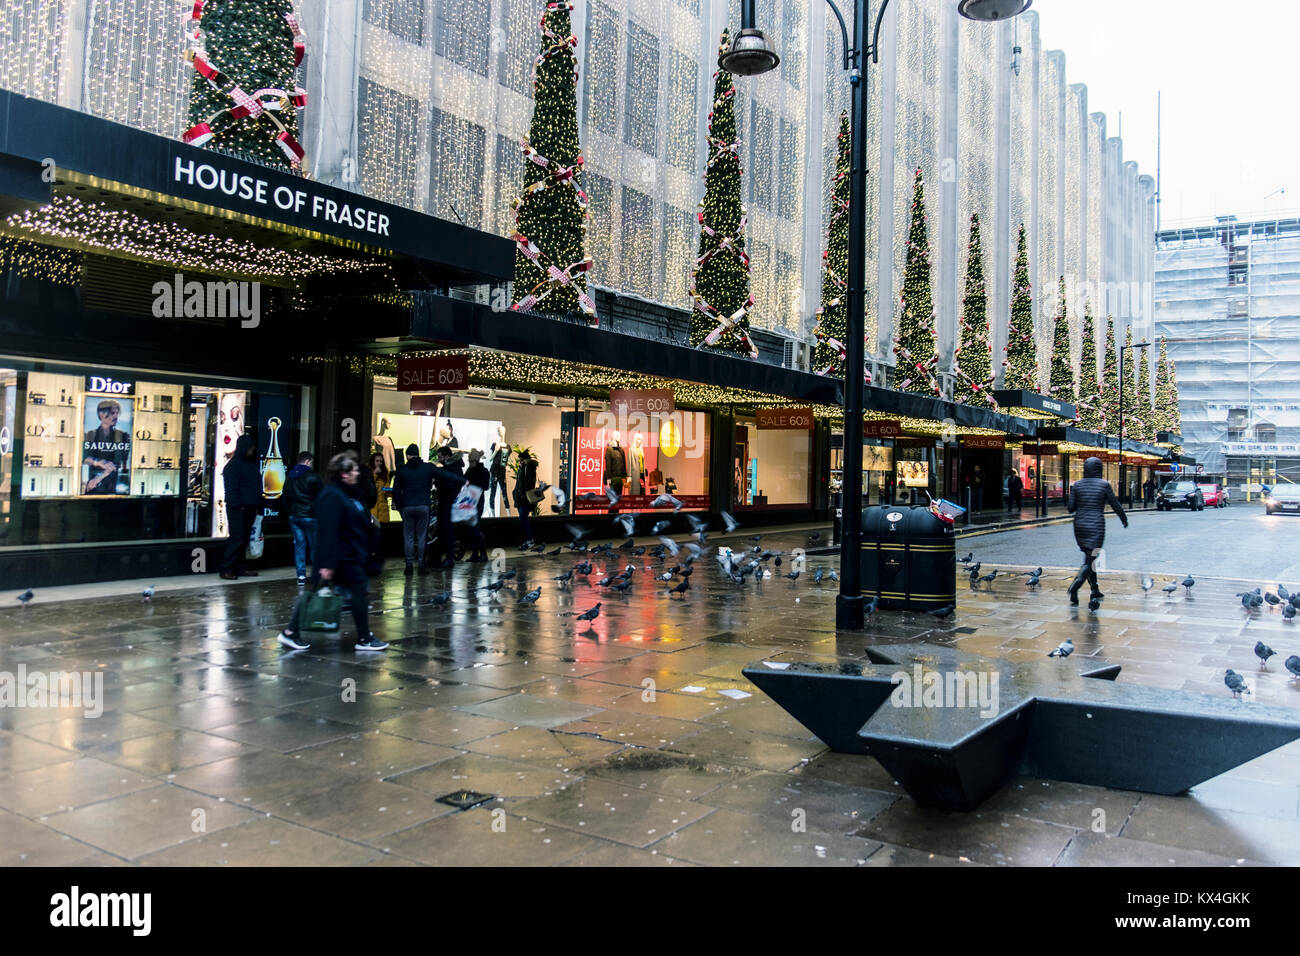 Oxford Street, London,House of Fraser department store,shop with Christmas decorations,xmas trees and January sale - Stock Image